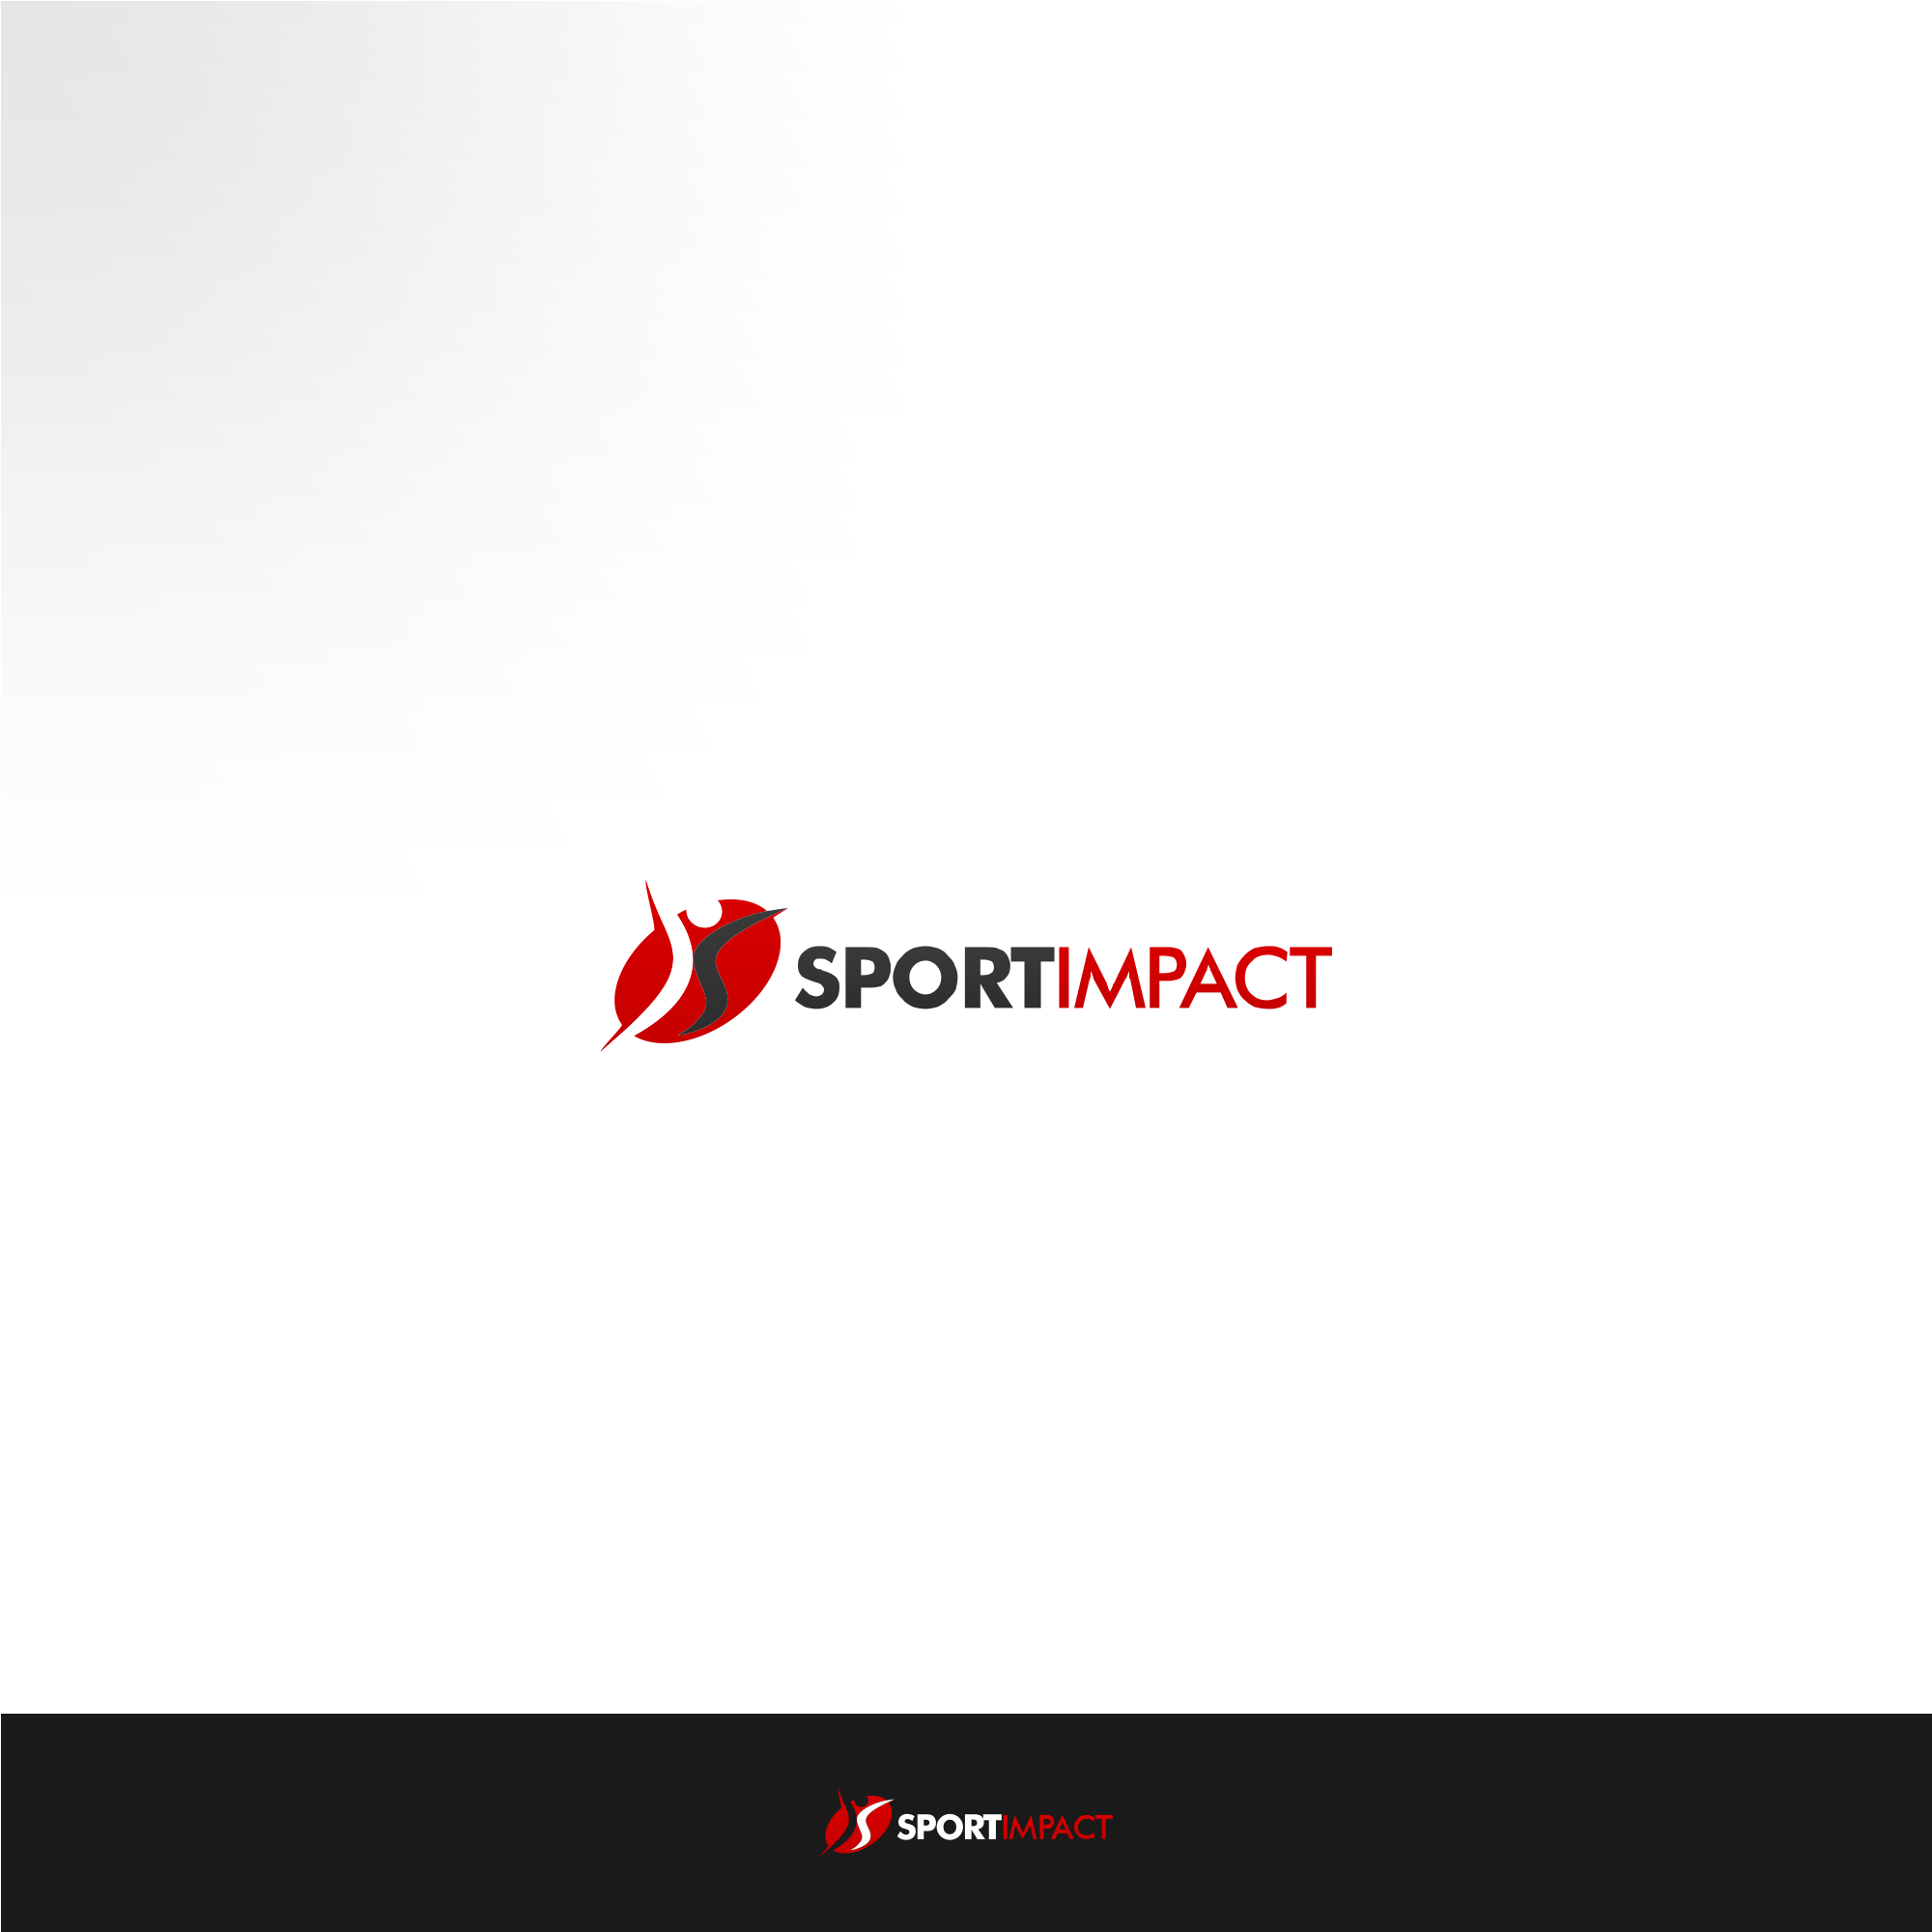 Sport Impact needs a new logo